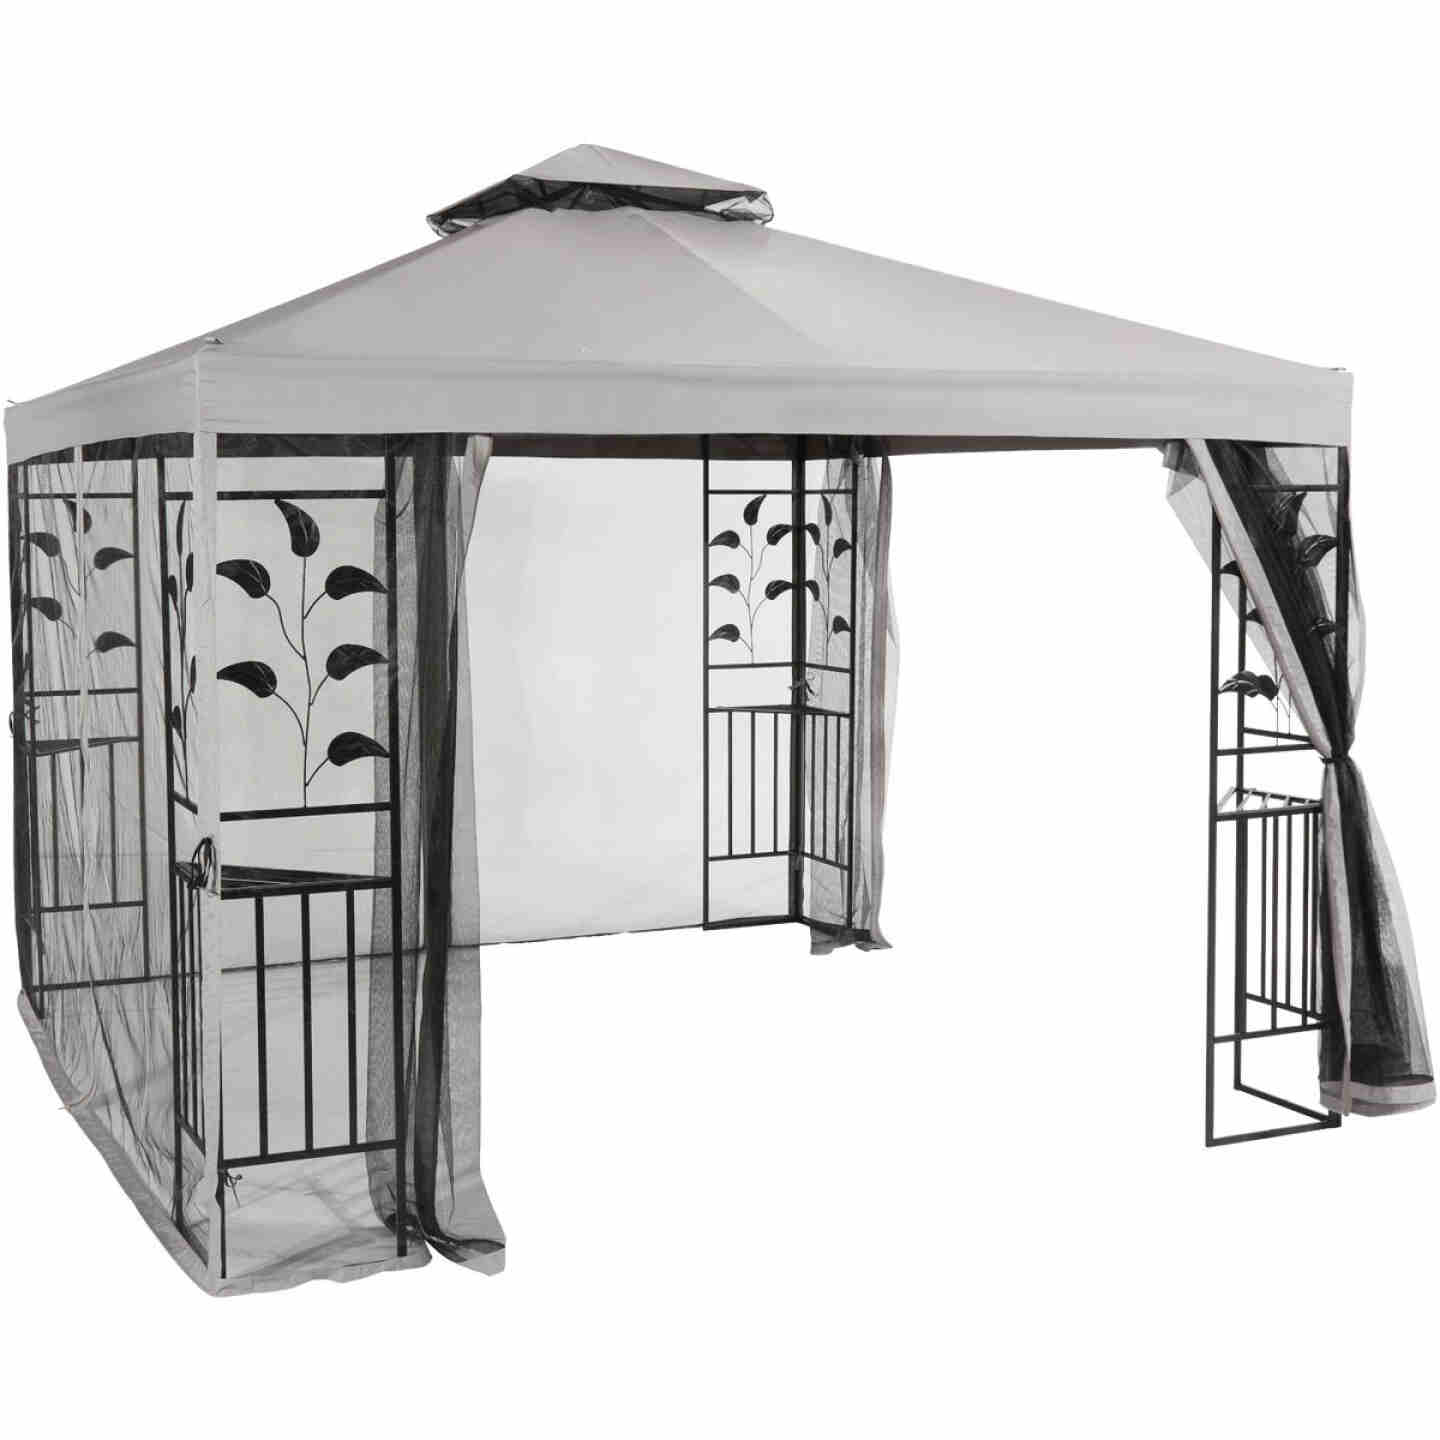 Outdoor Expressions 12 Ft. x 12 Ft. Gray & Black Steel Gazebo with Sides Image 10